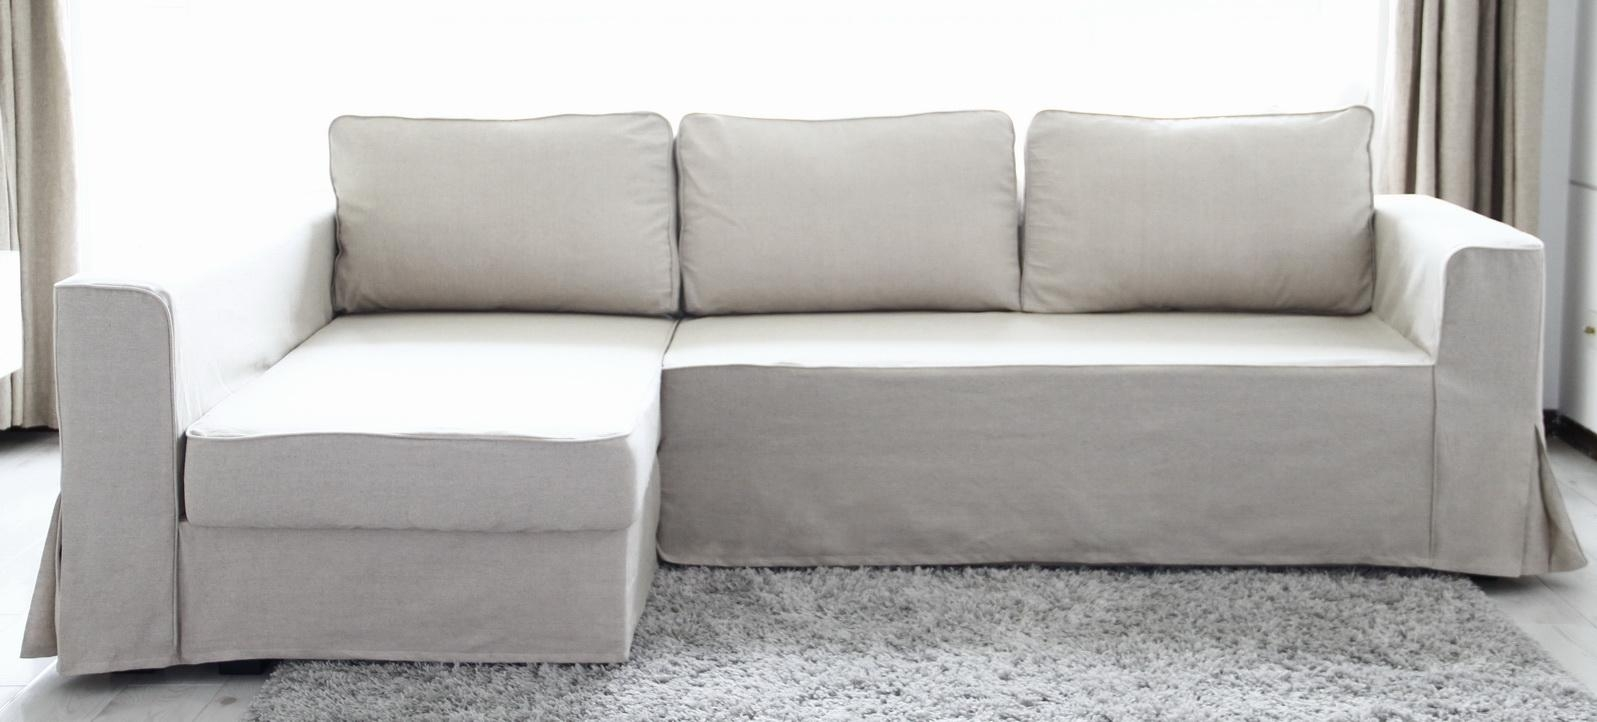 Loose Fit Linen Manstad Sofa Slipcovers Now Available Intended For Manstad Sofa Bed (Image 13 of 20)